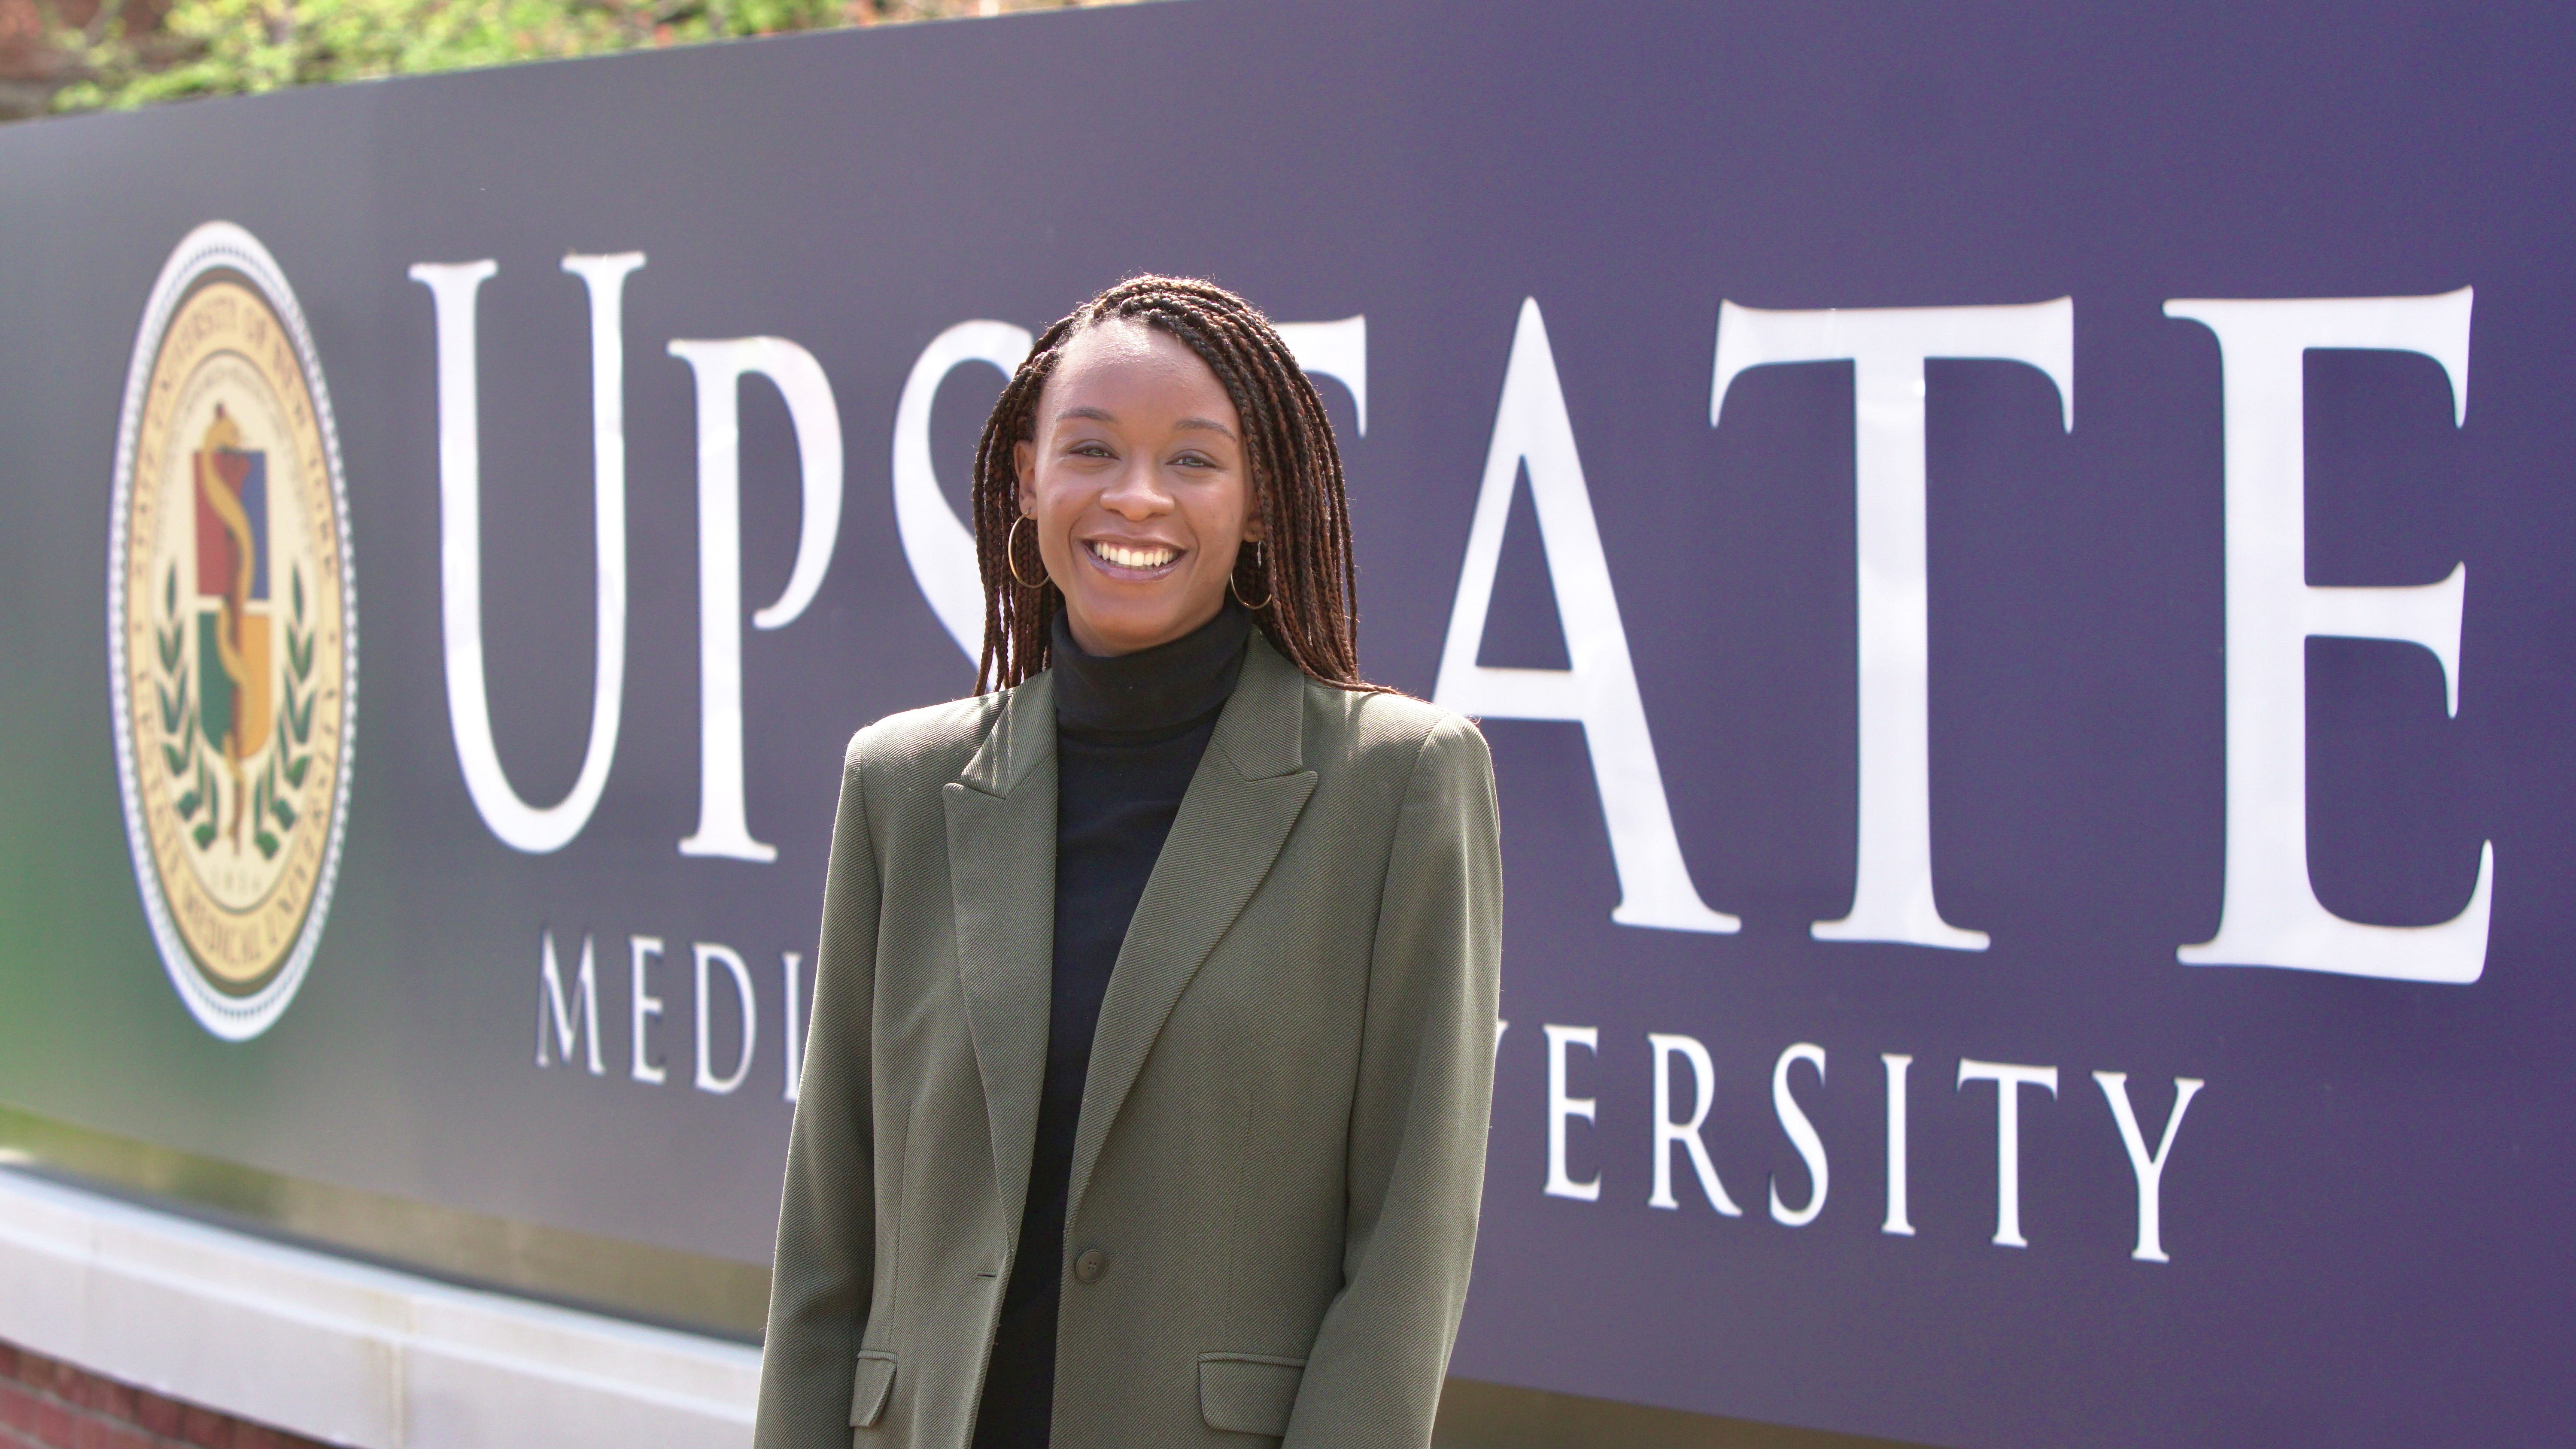 Isabelle Thenor-Louis is a student at Upstate Medical University working to become a hybrid physician-journalist.